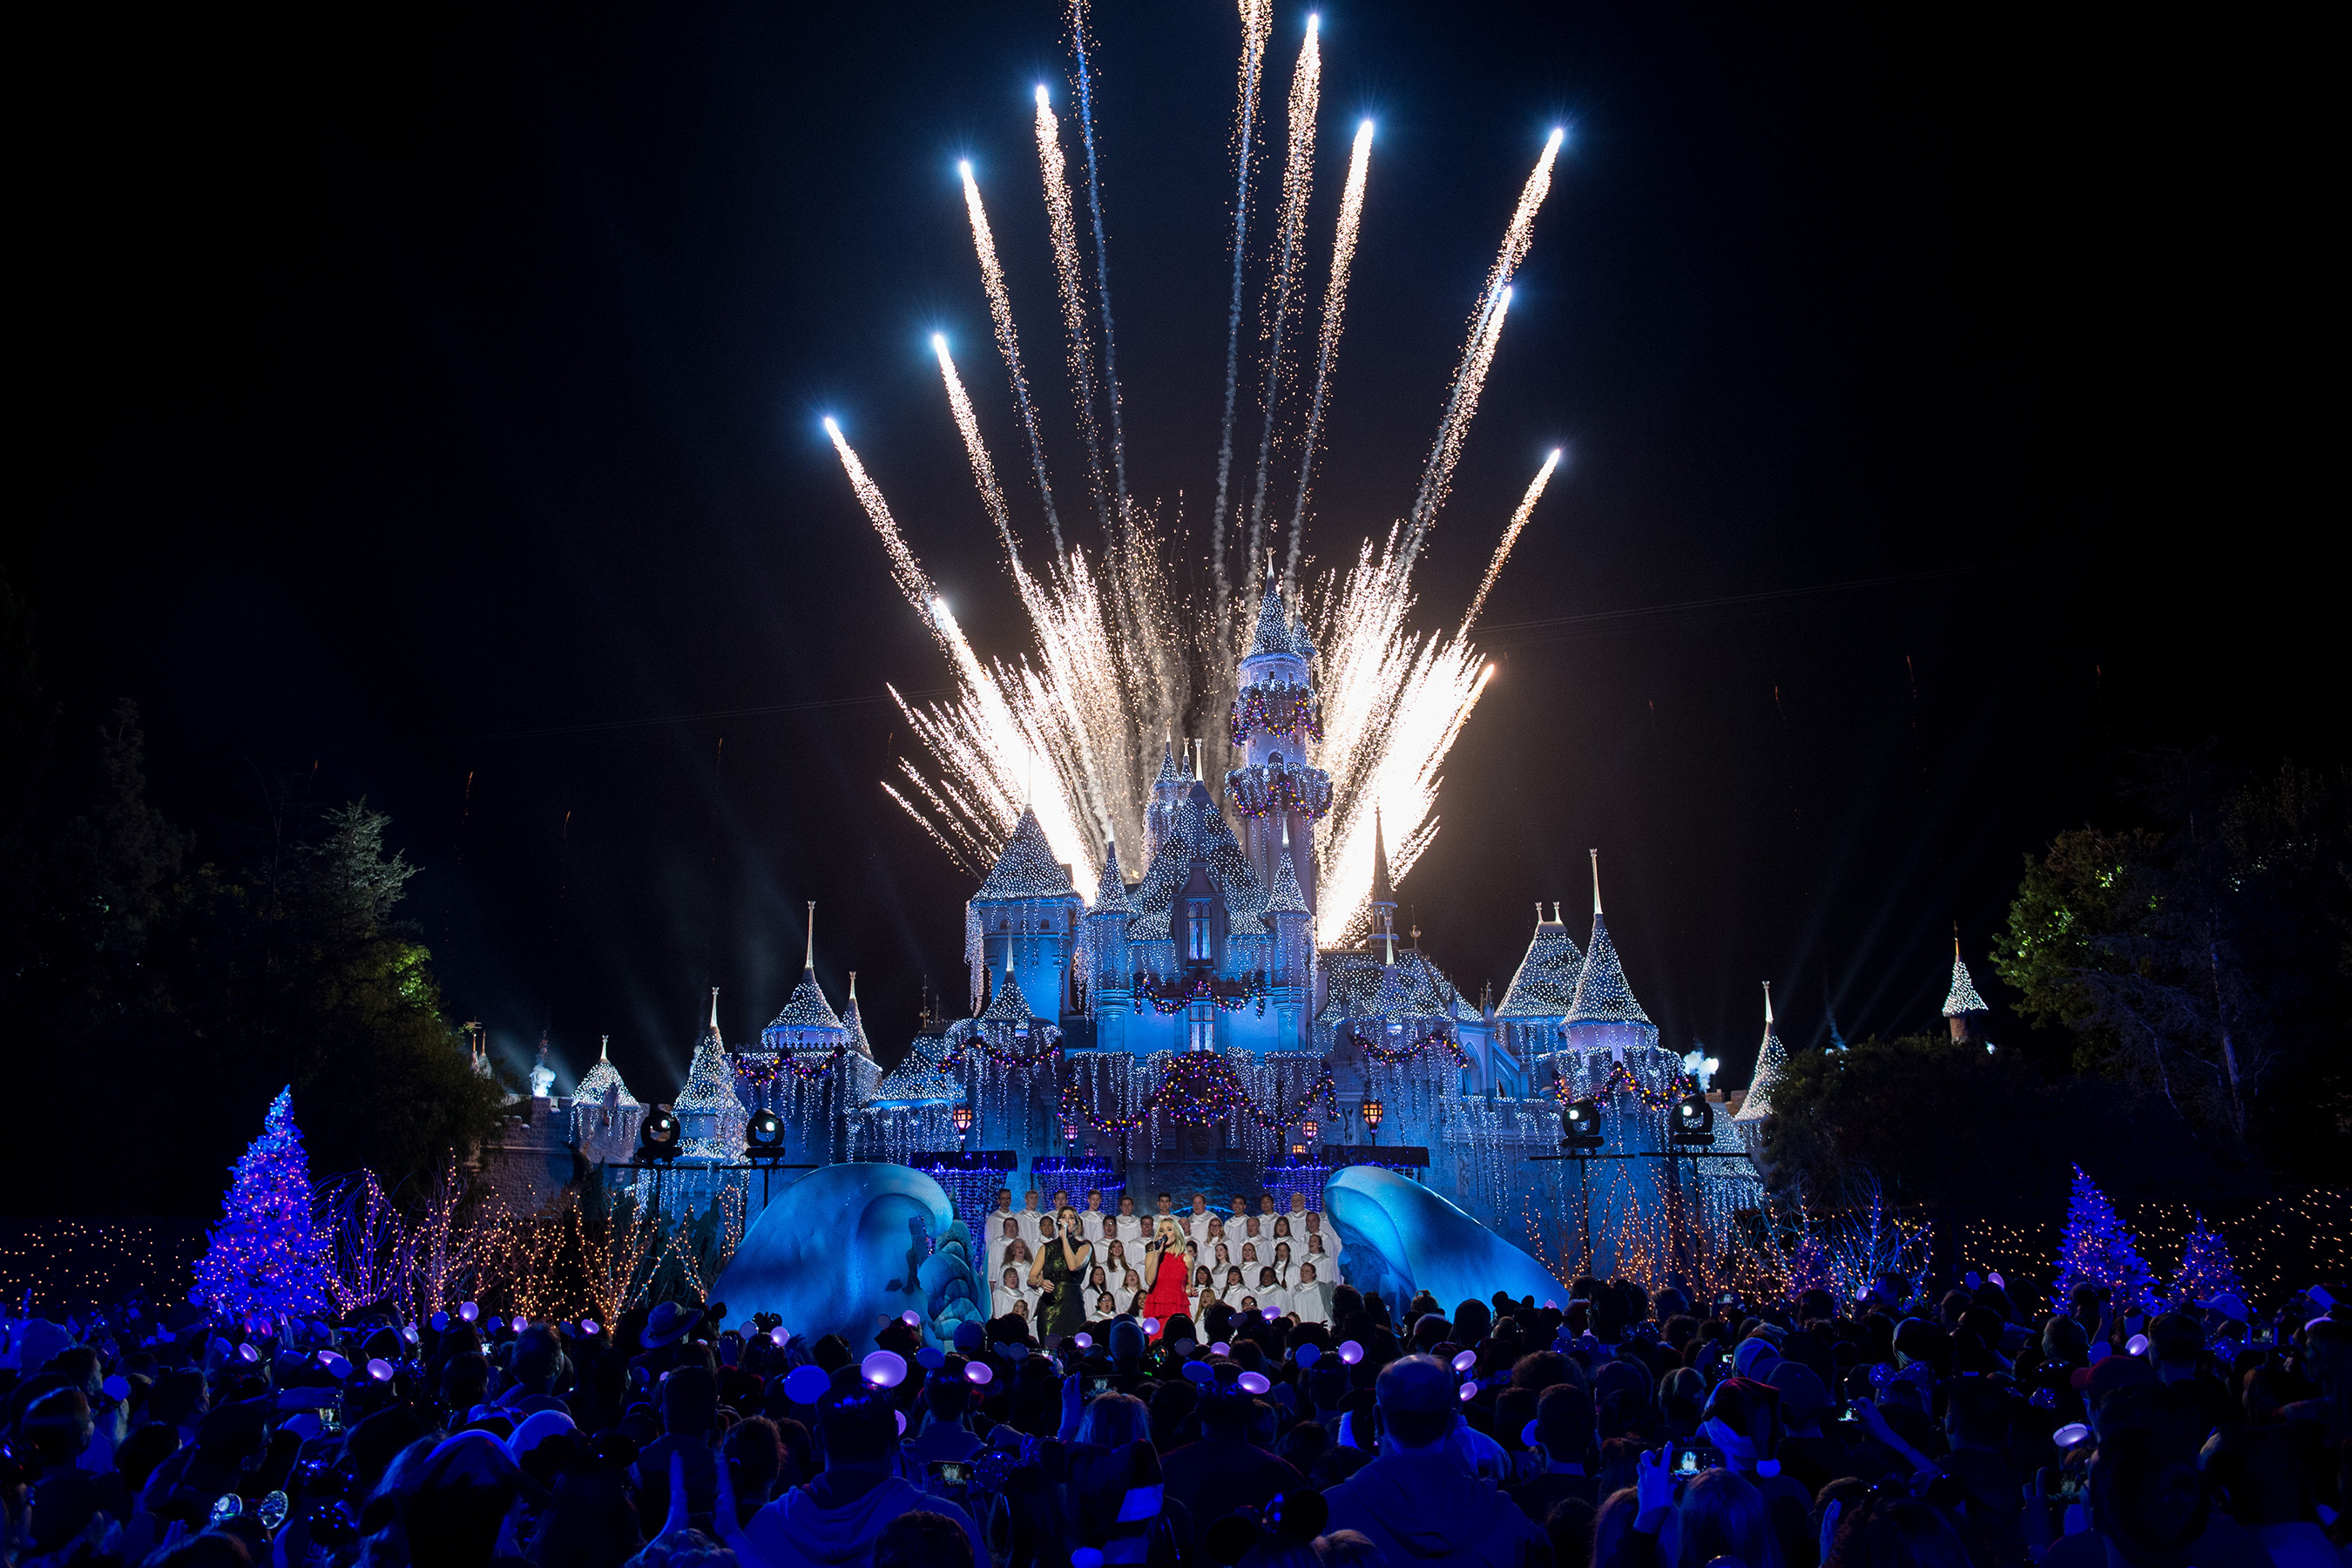 Disney Parks and Superstars to Light Up ABC's Primetime Special 'The Wonderful World of Disney: Magical Holiday Celebration' Nov. 30